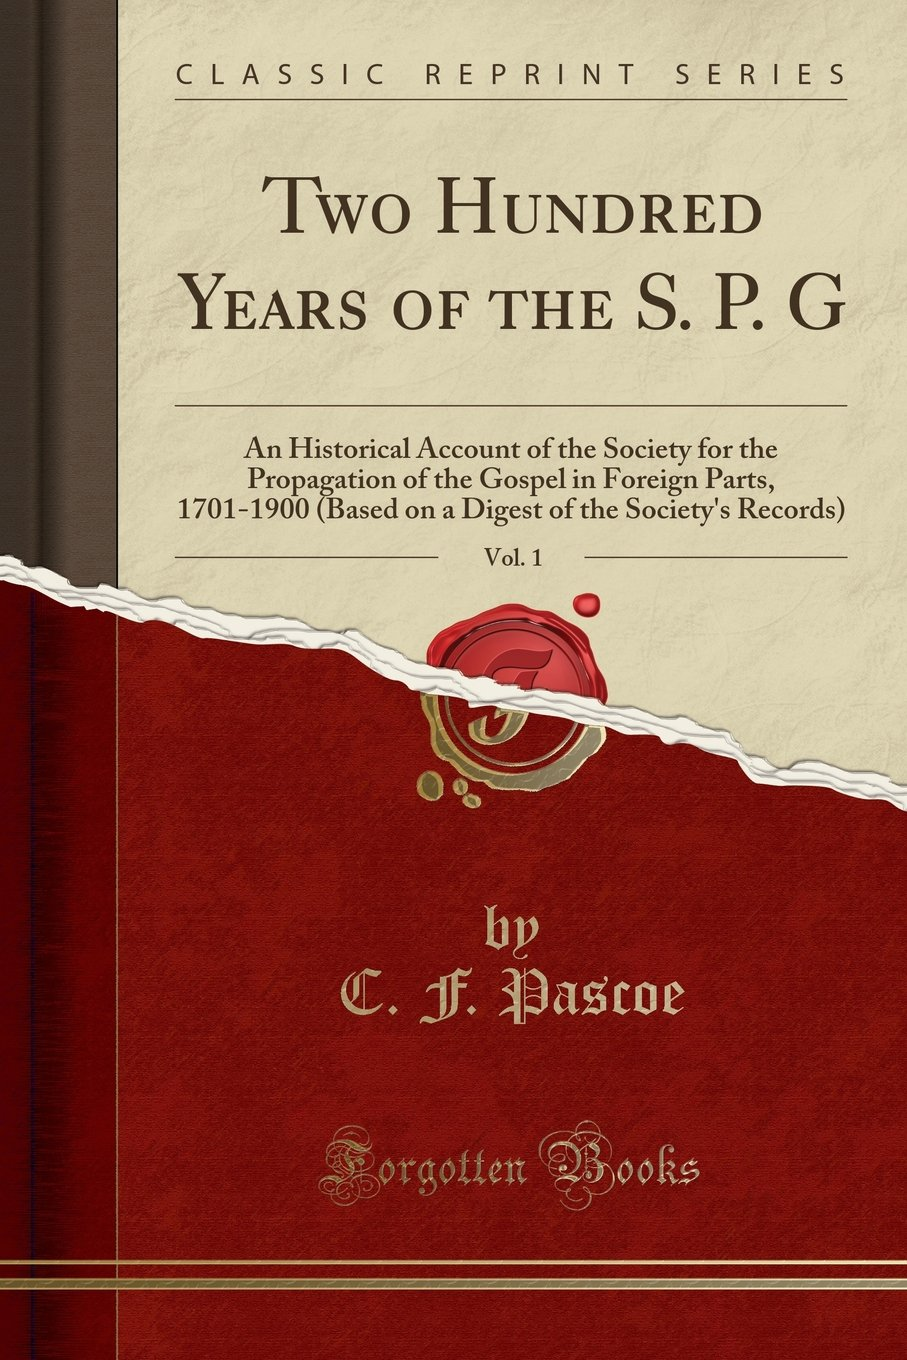 1: An Historical Account of the Society for the Propagation of the Gospel  in Foreign Parts, 1701-1900 (Based on ... of the Society's ...